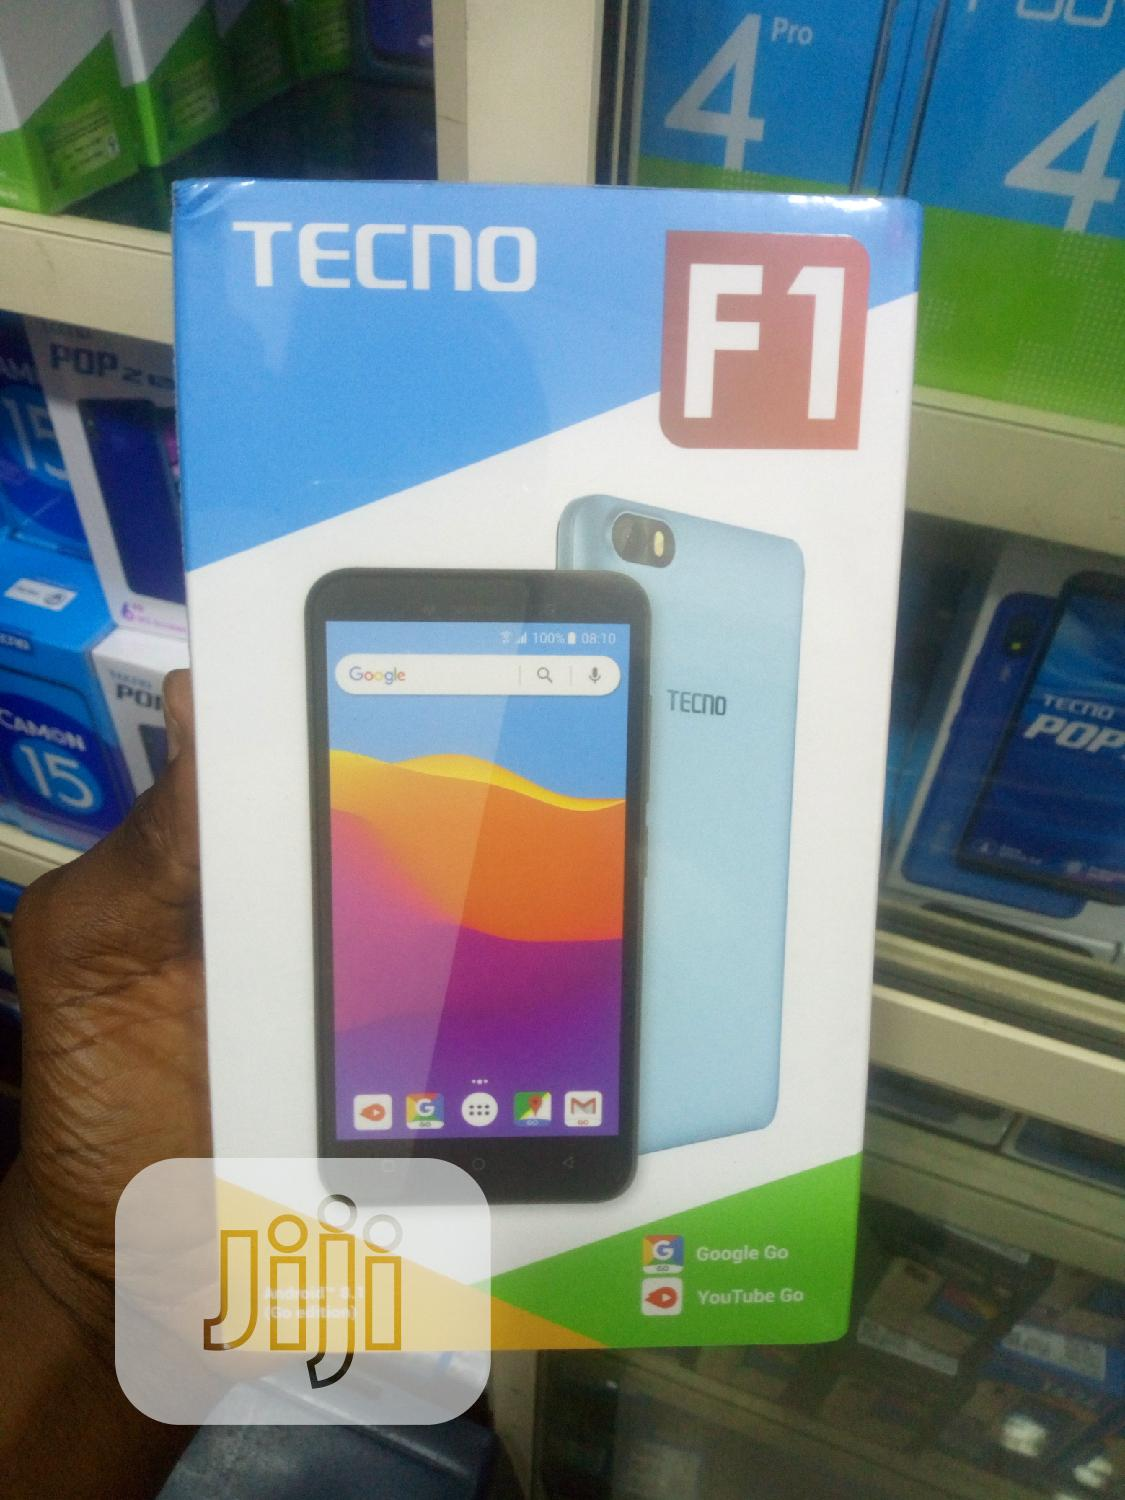 New Tecno F1 8 GB